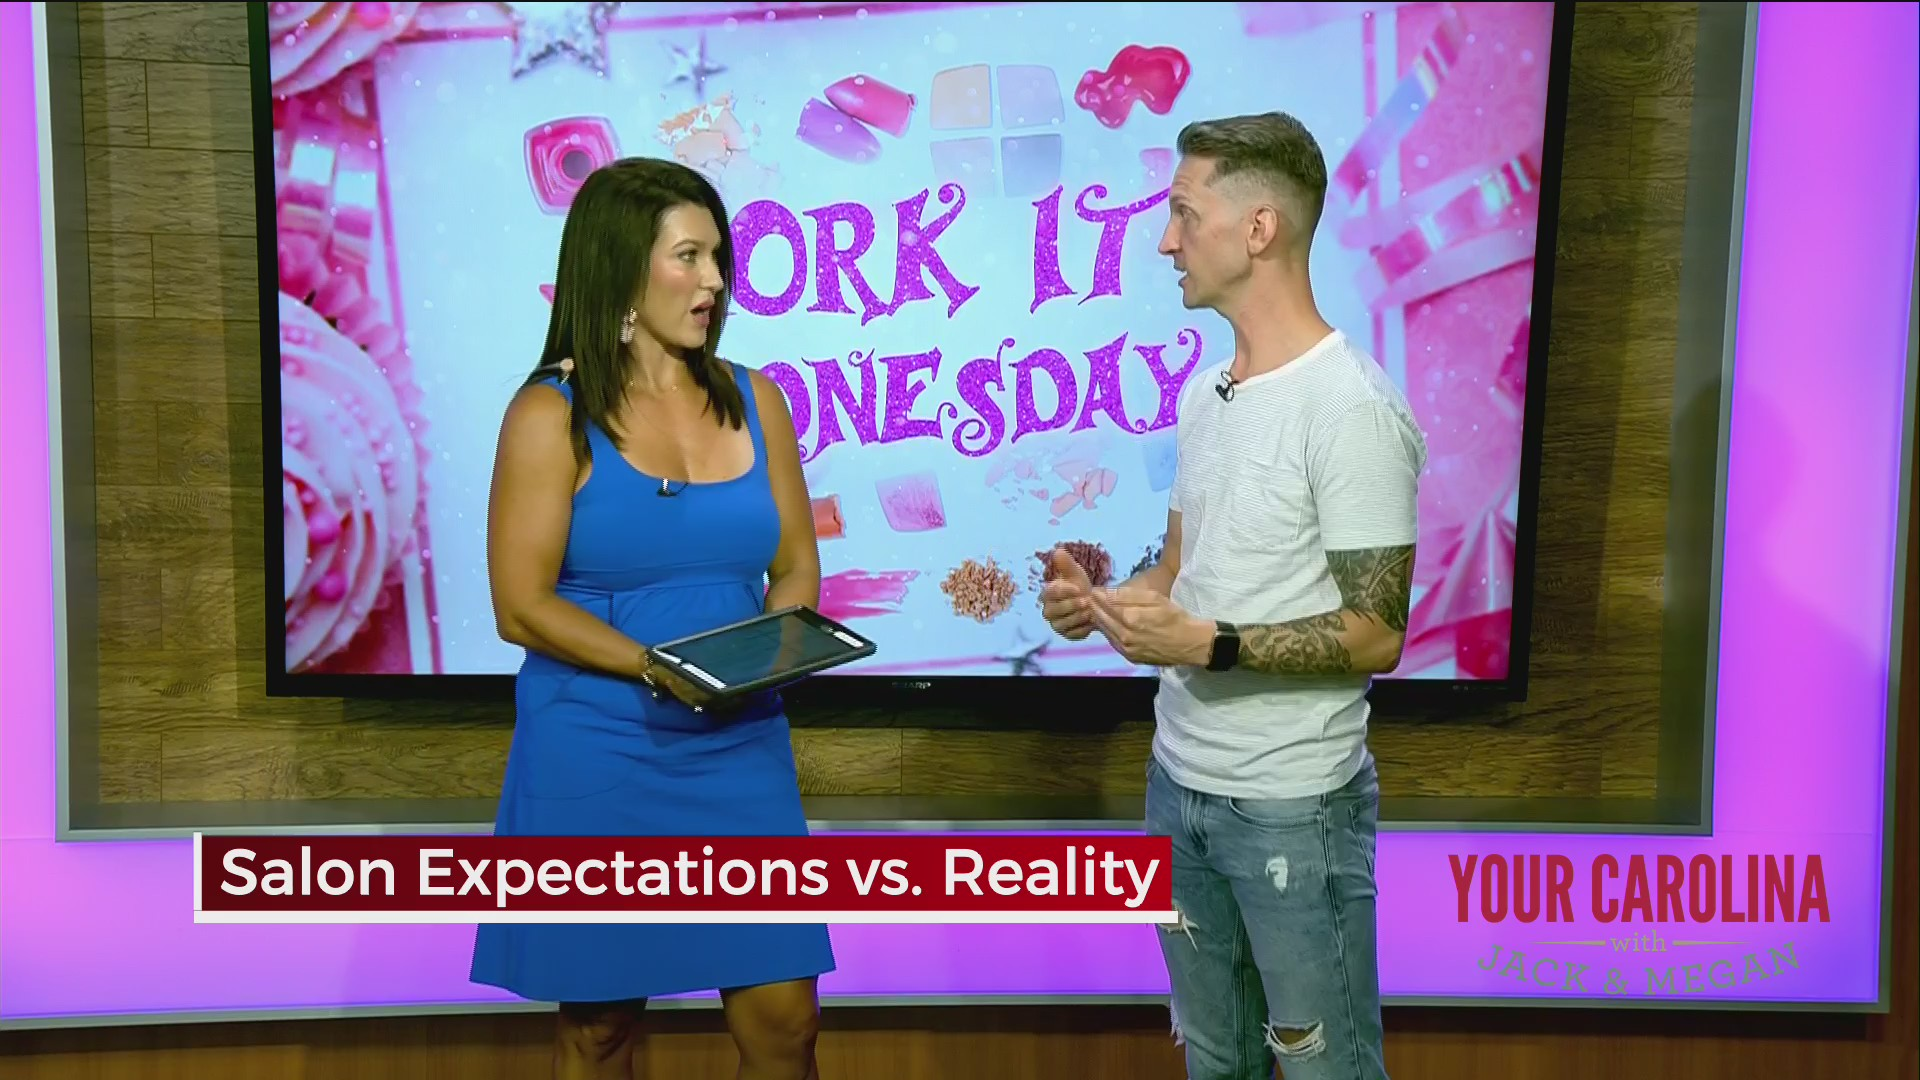 Work it Wednesday - Salon Expectations vs. Reality